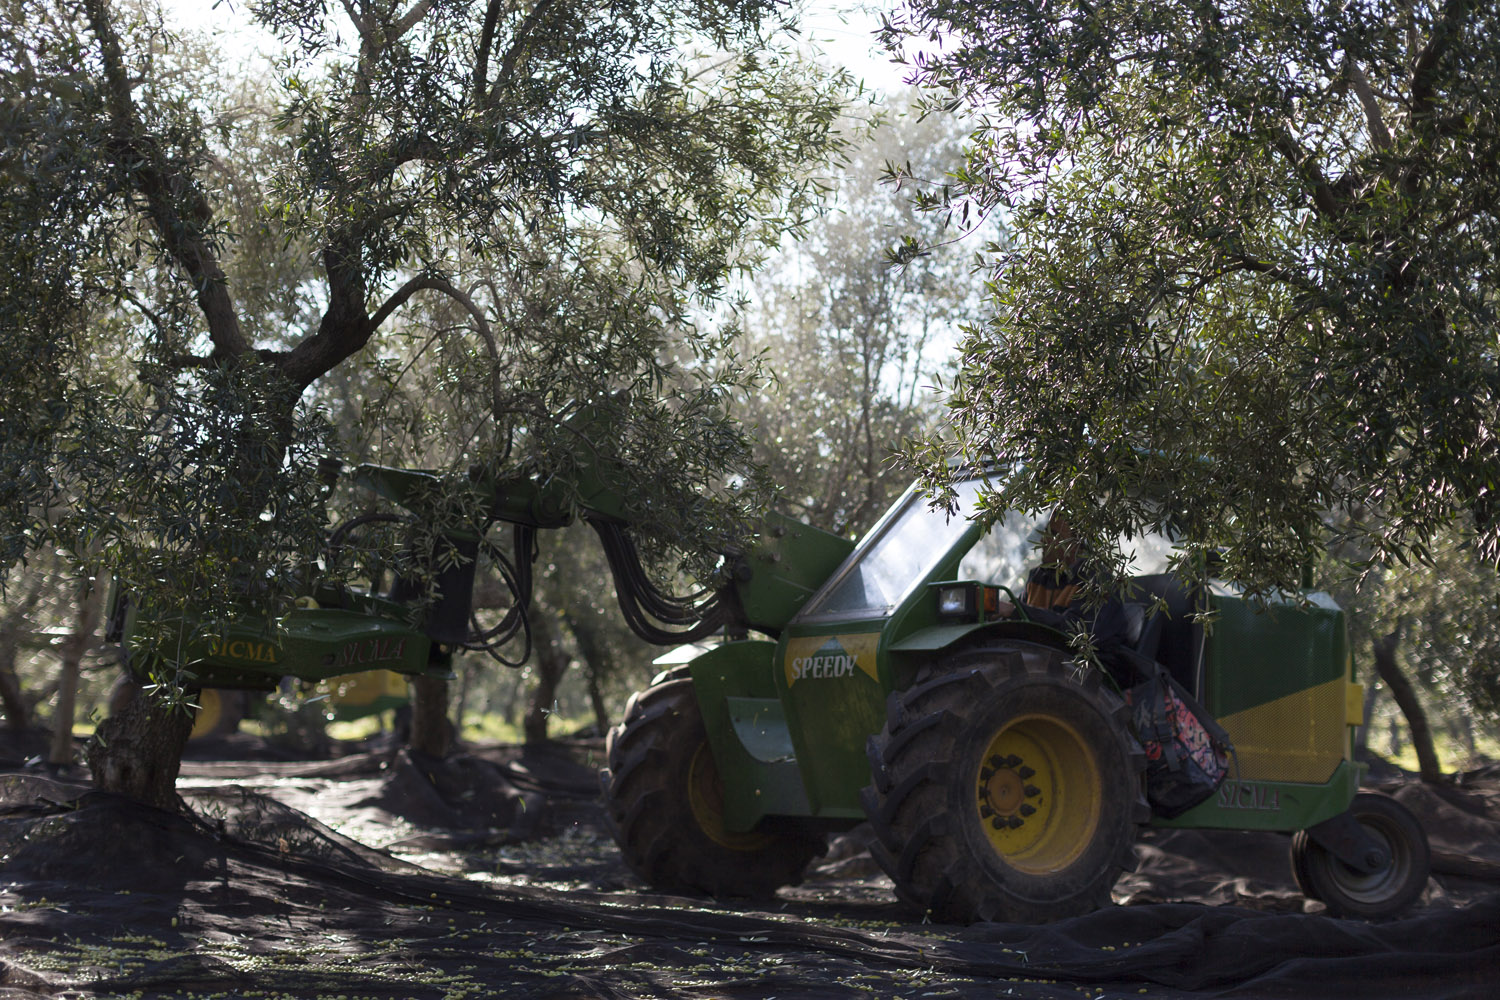 Harvesting olives in a modern, intensive olive grove in the countryside of Ostuni. The olive oil sector in Puglia employs thousands of people, produces half a billion euros of value every year and literally defines much of a region that boasts more than 50 million olive trees. (2016)